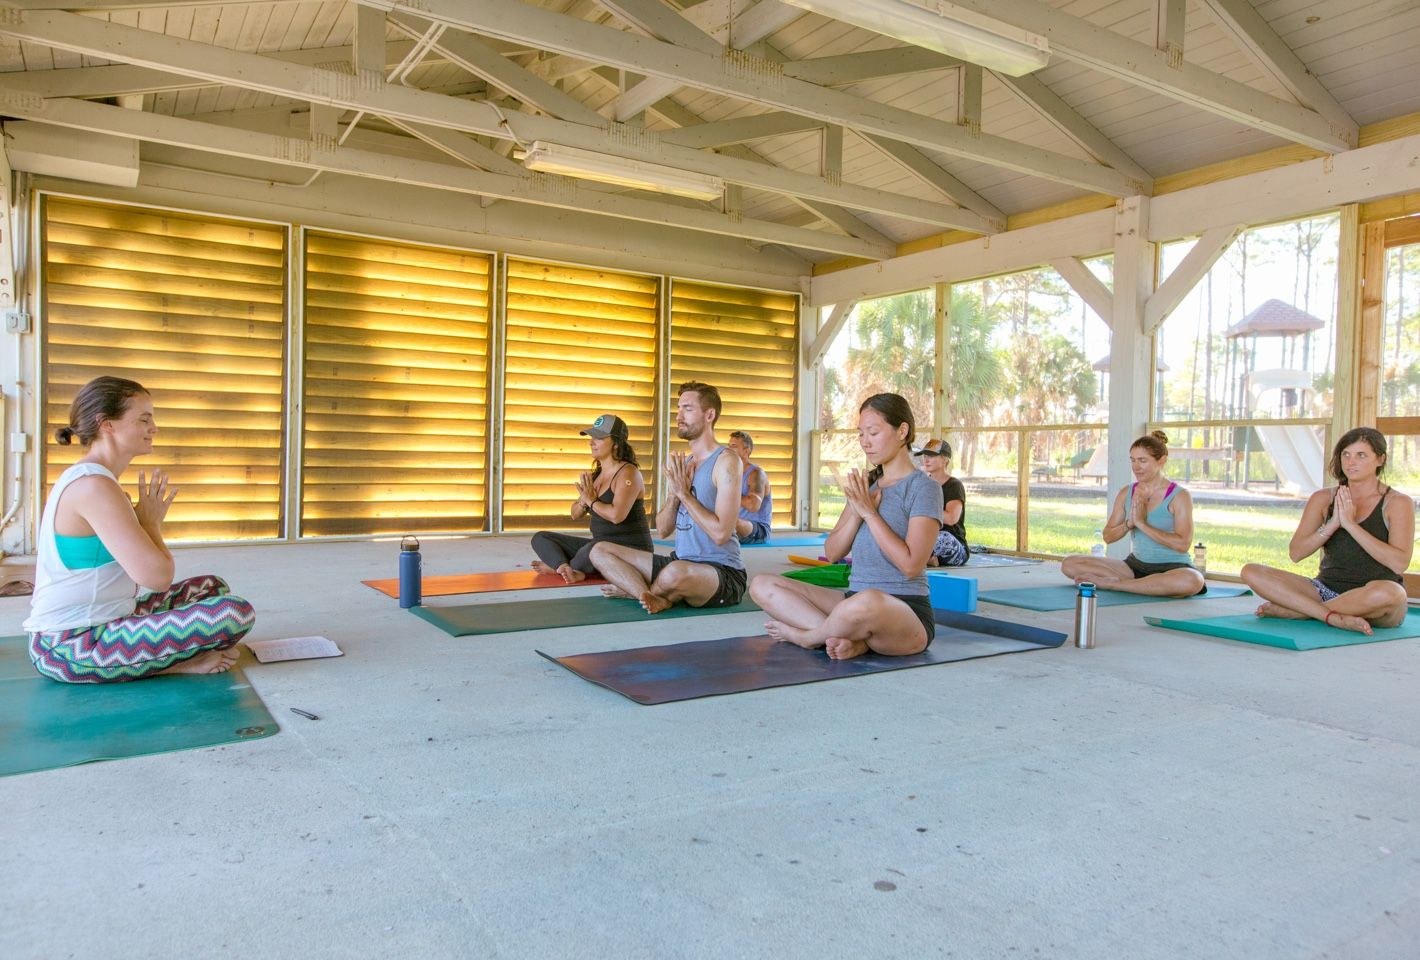 yoga class in seated position at park